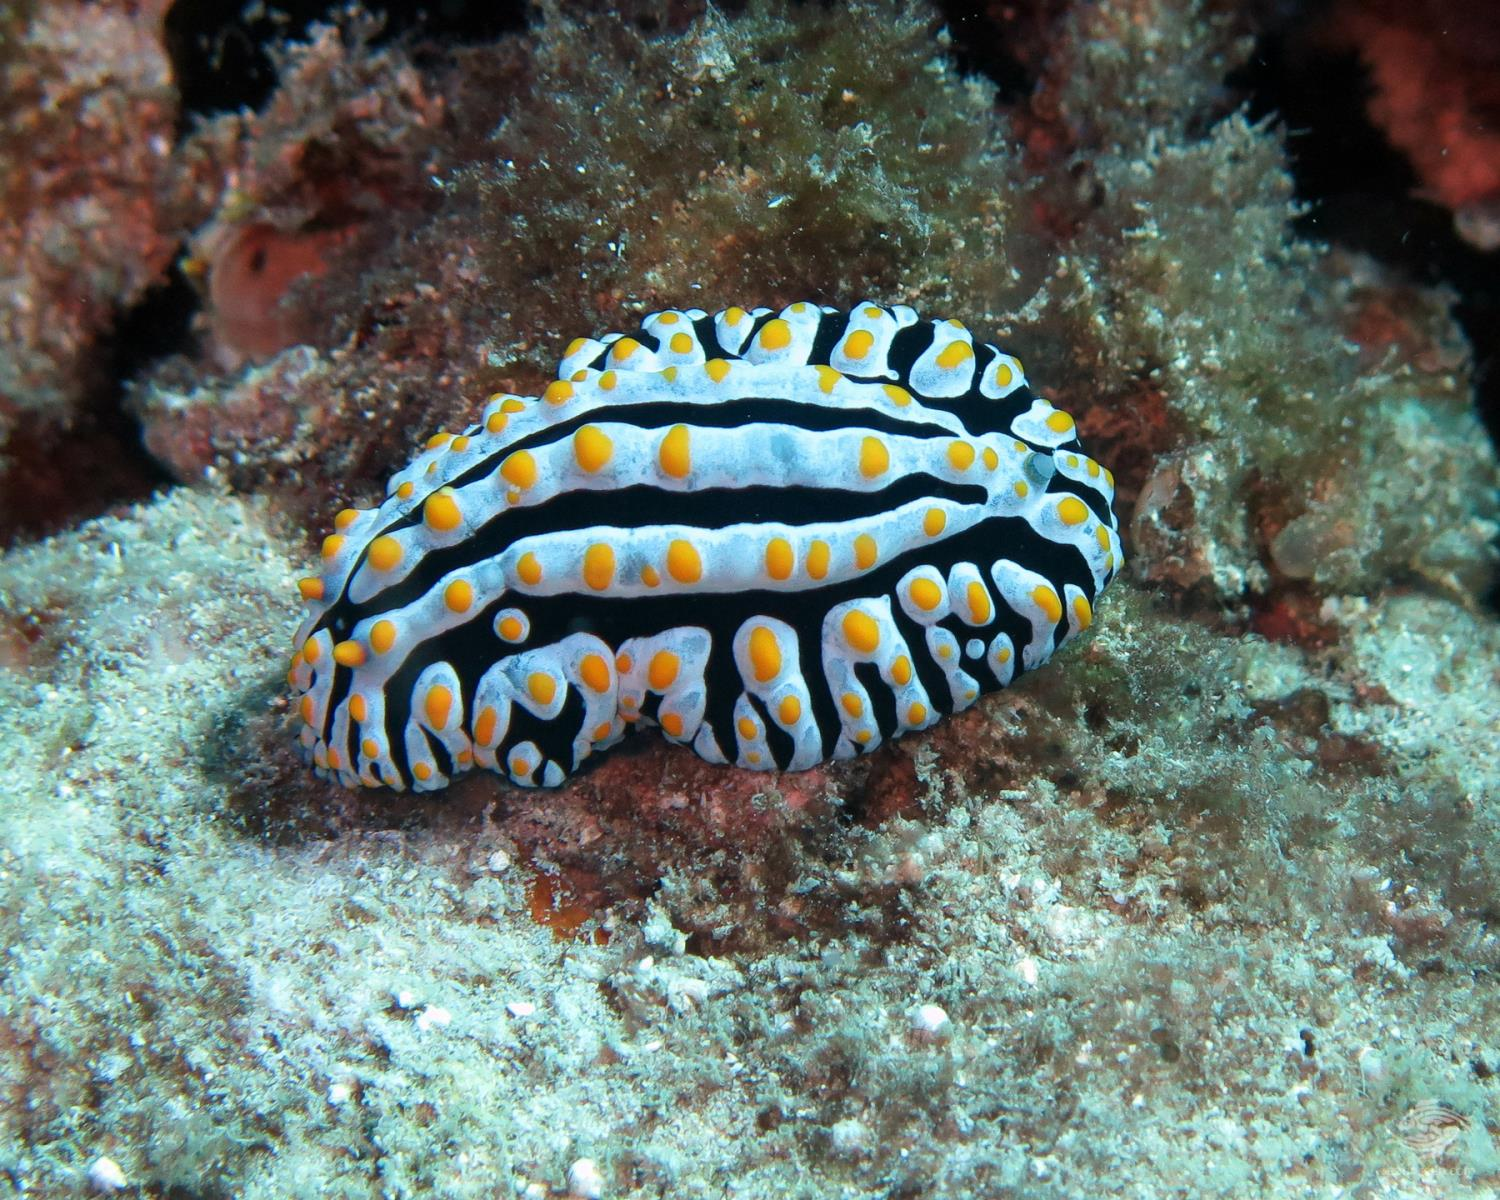 Nudibranch Dar es Salaam Tanzania Dive sites